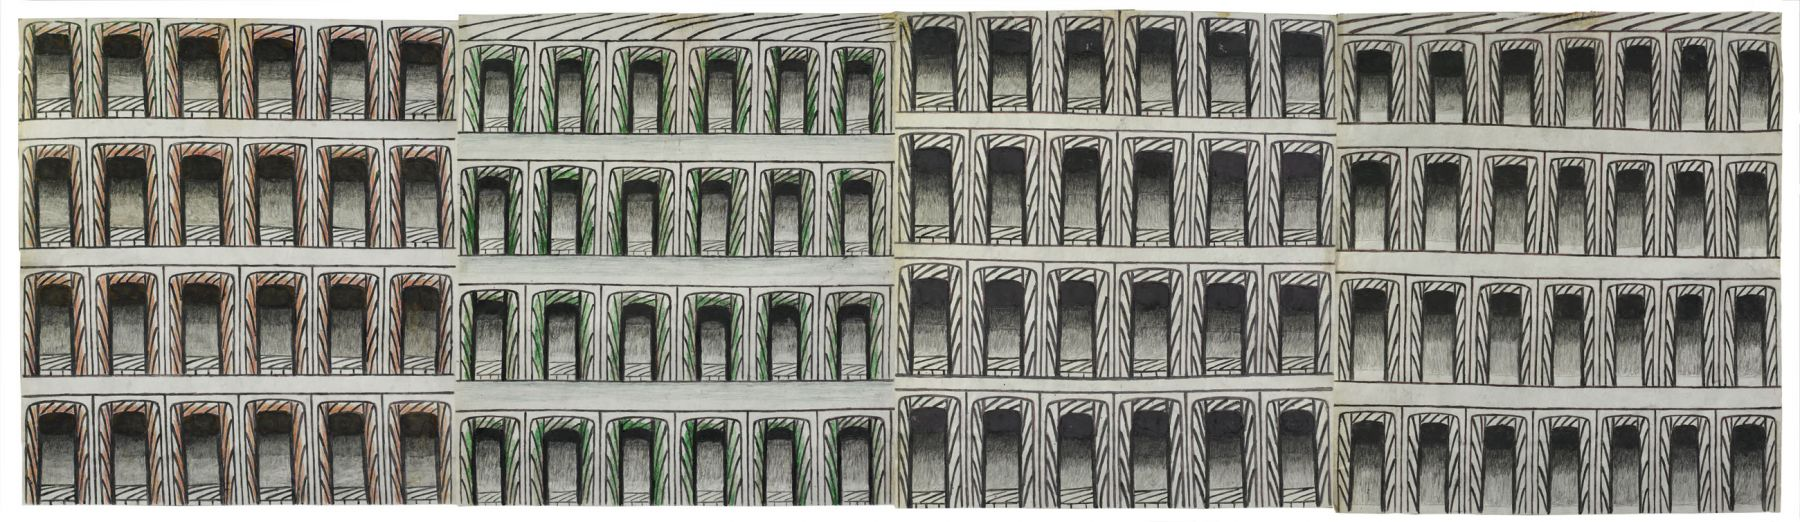 Martín Ramírez(1895-1963) Mexico/USA, Untitled (Arches), c. 1960-63, Gouache, colored pencil, and graphite on pieced paper, 20x 90in